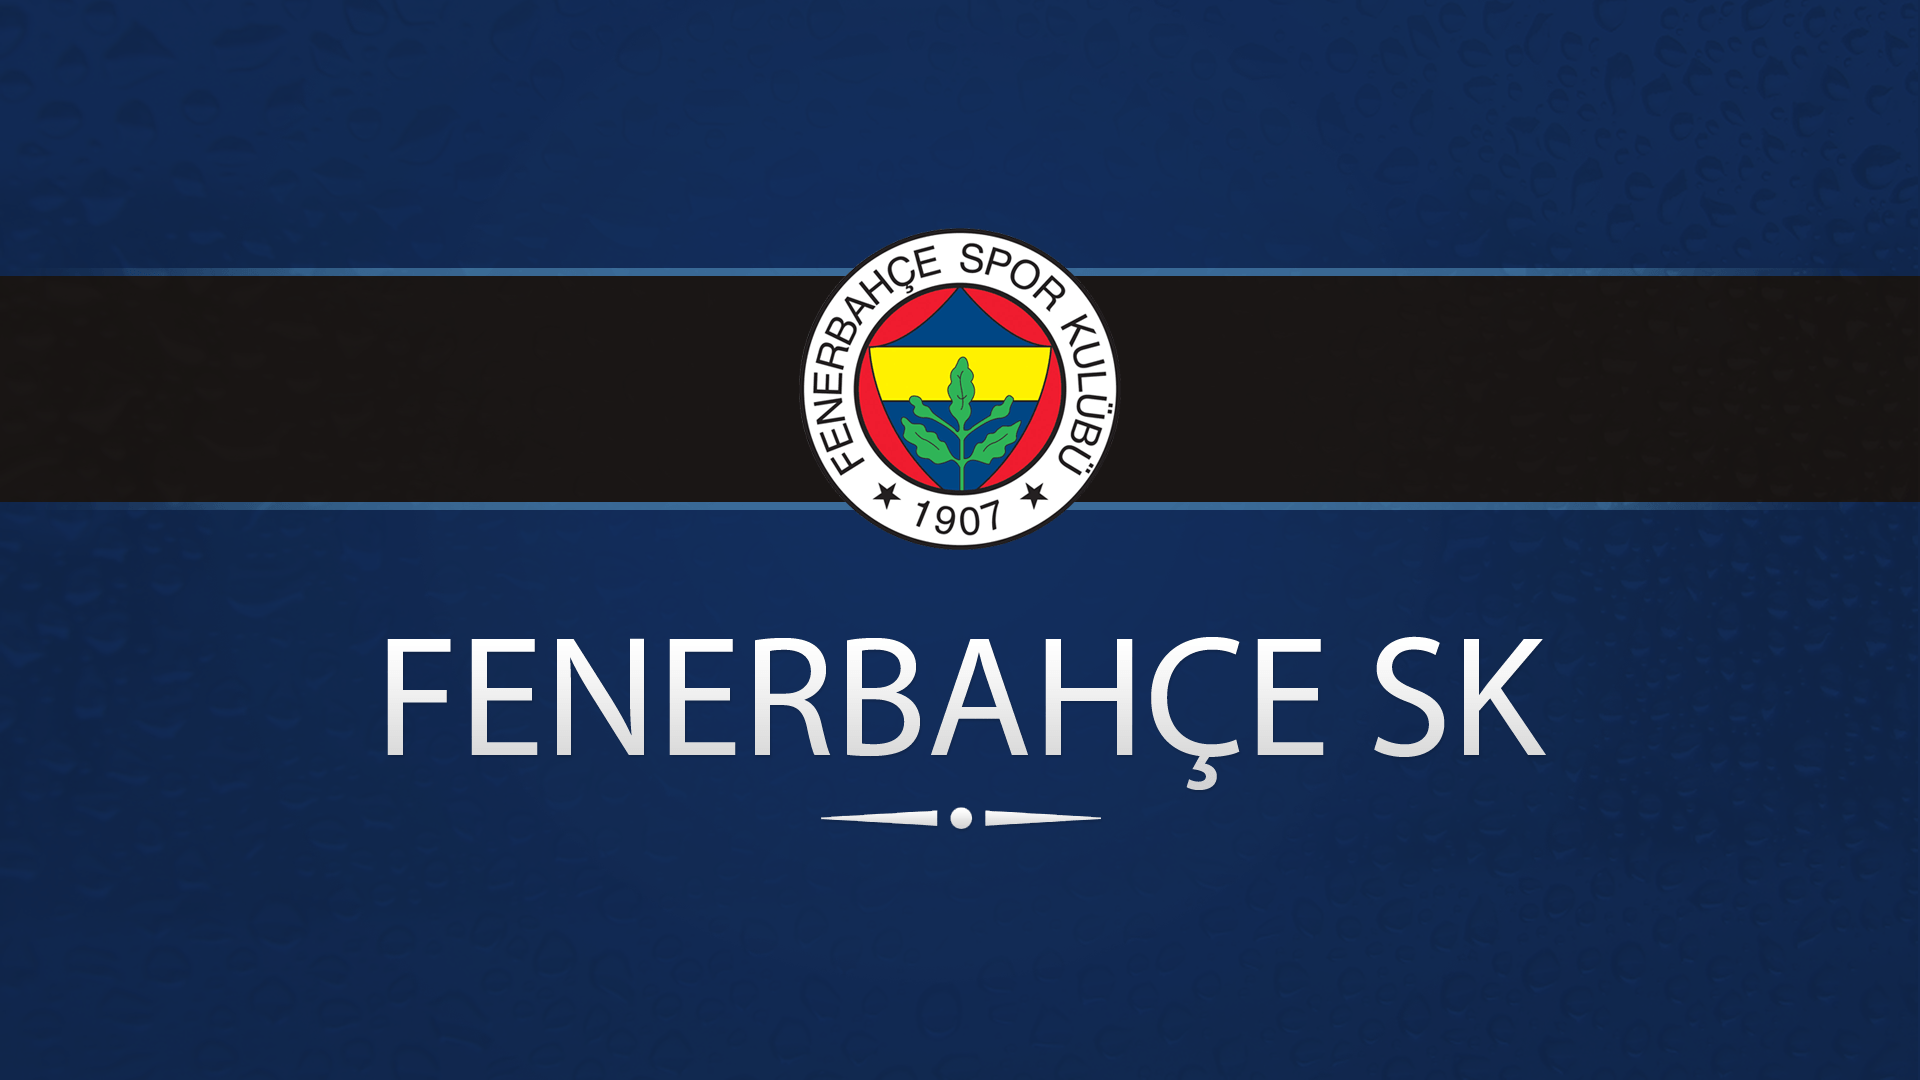 Fenerbahce SK by Capomastro on DeviantArt